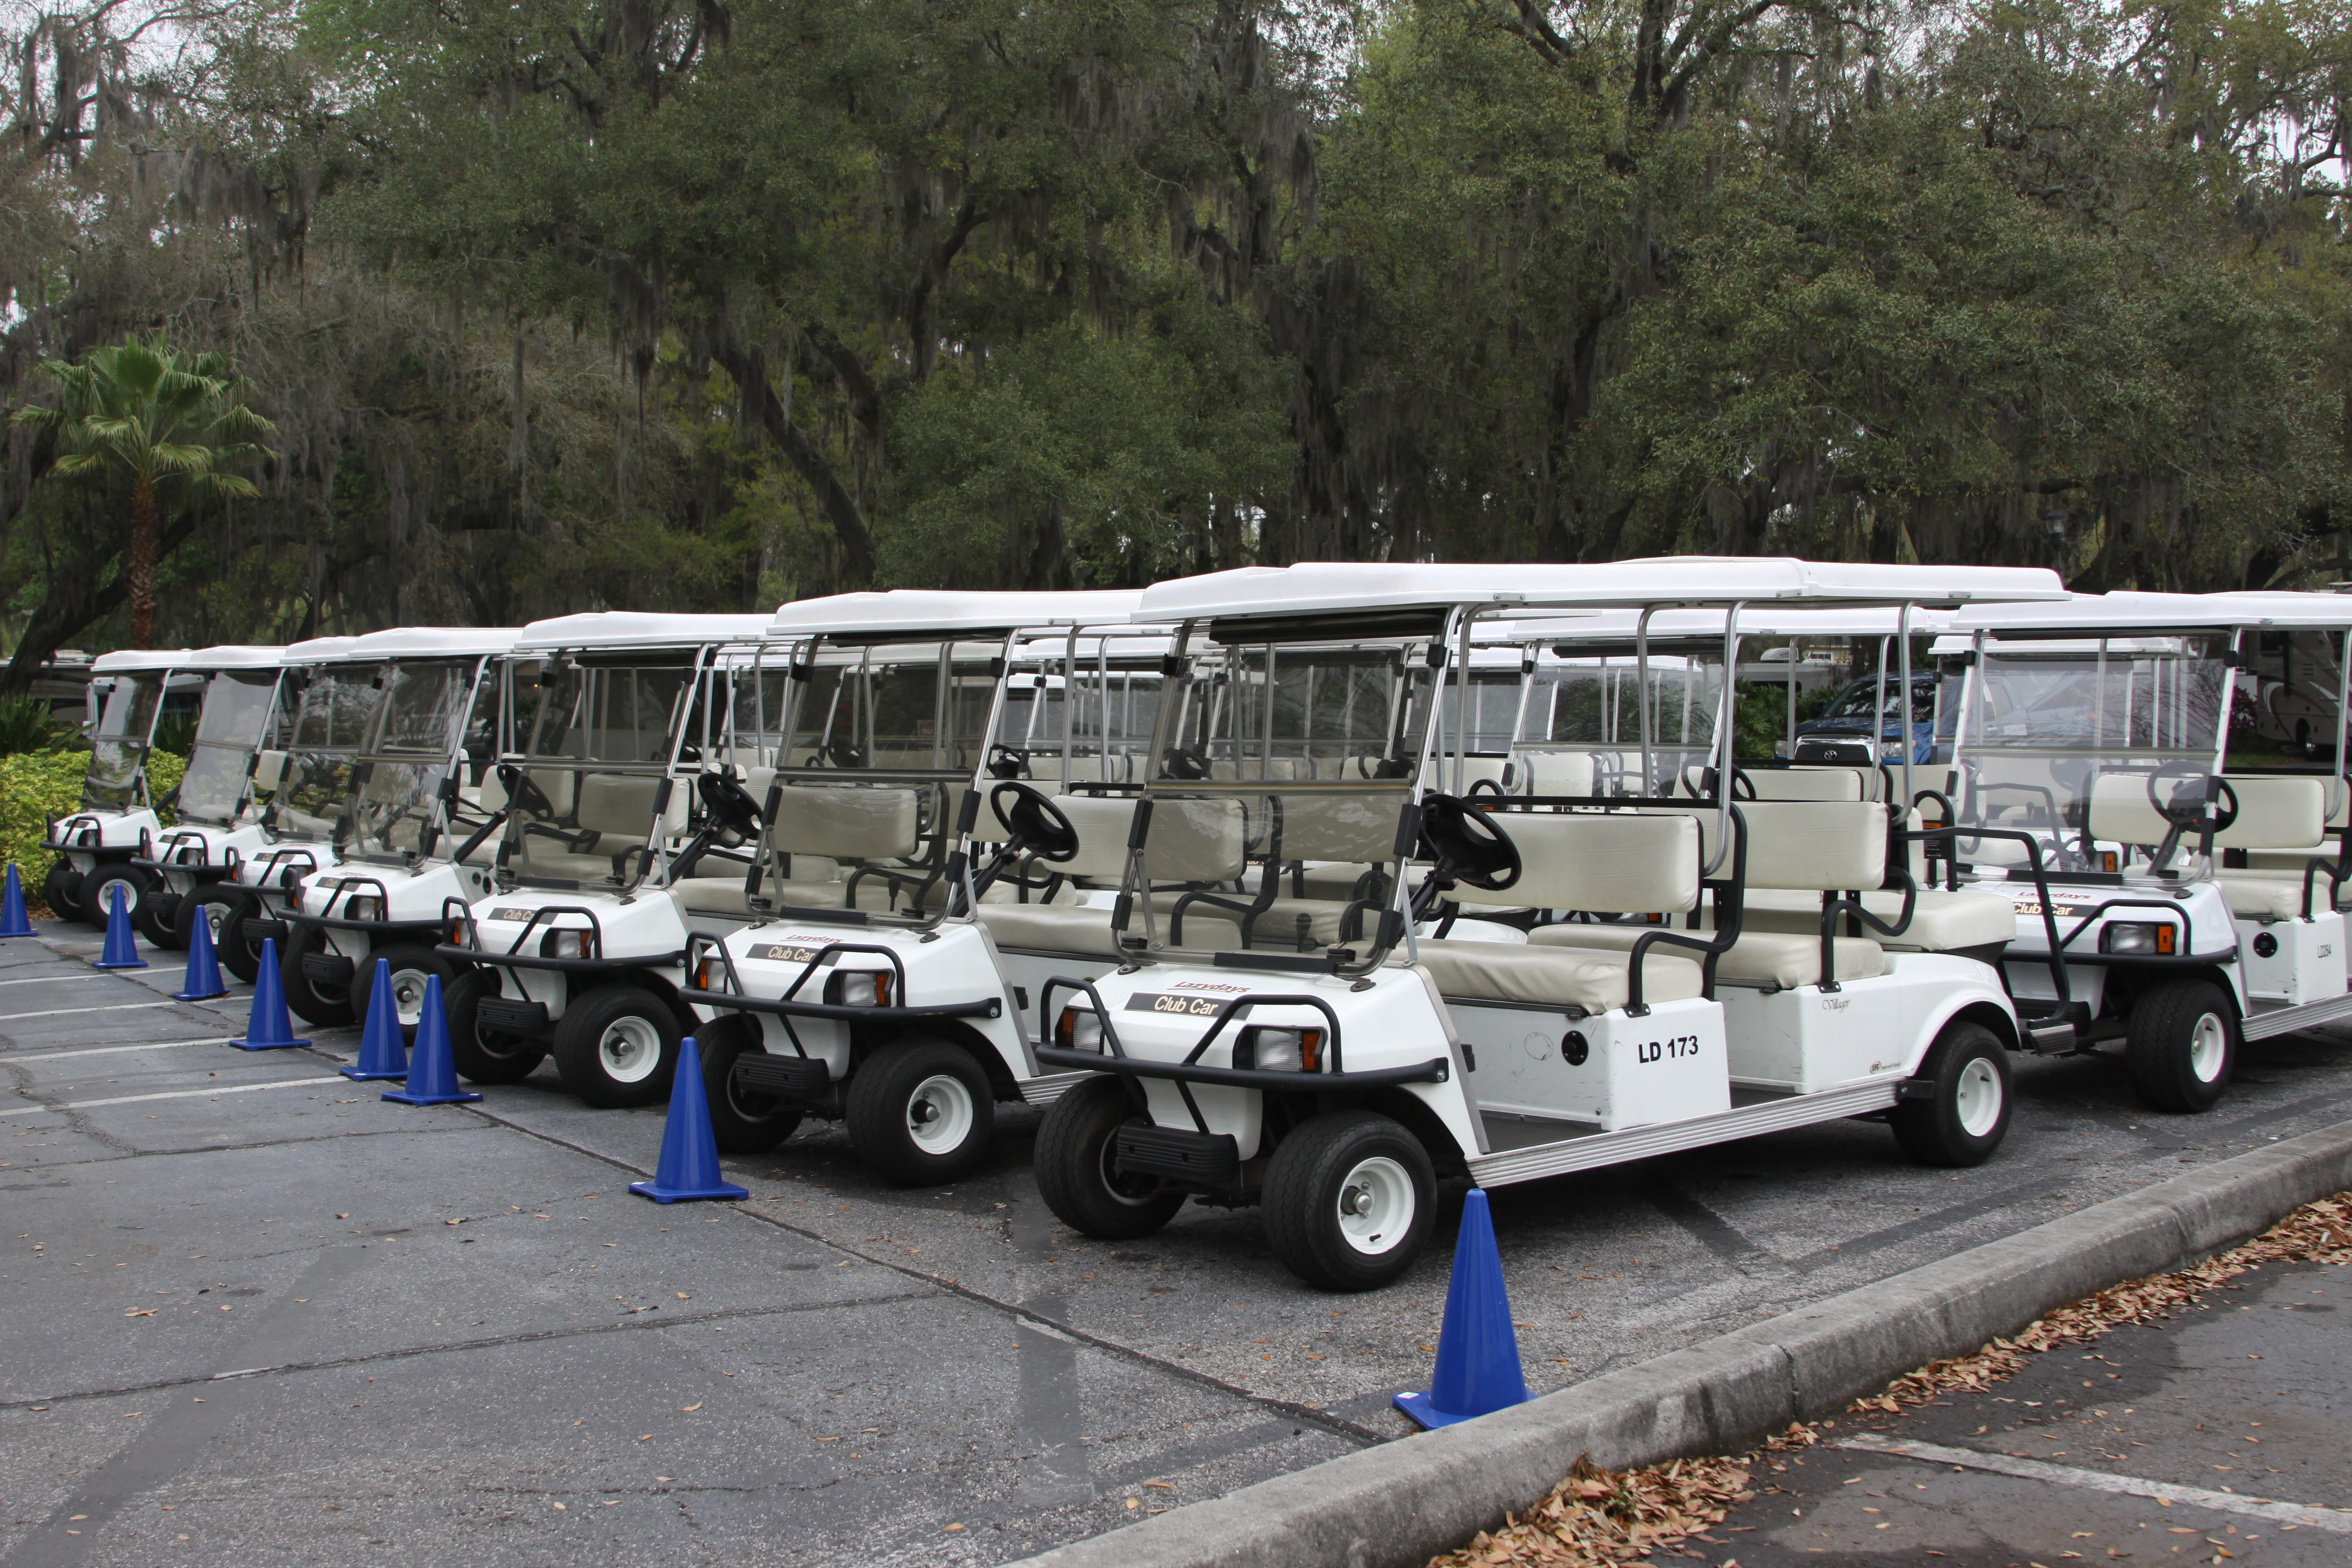 Used Cars Dealers Near Me >> Golf Carts for Sale Near Me | Tampa | Orlando | Miami ...